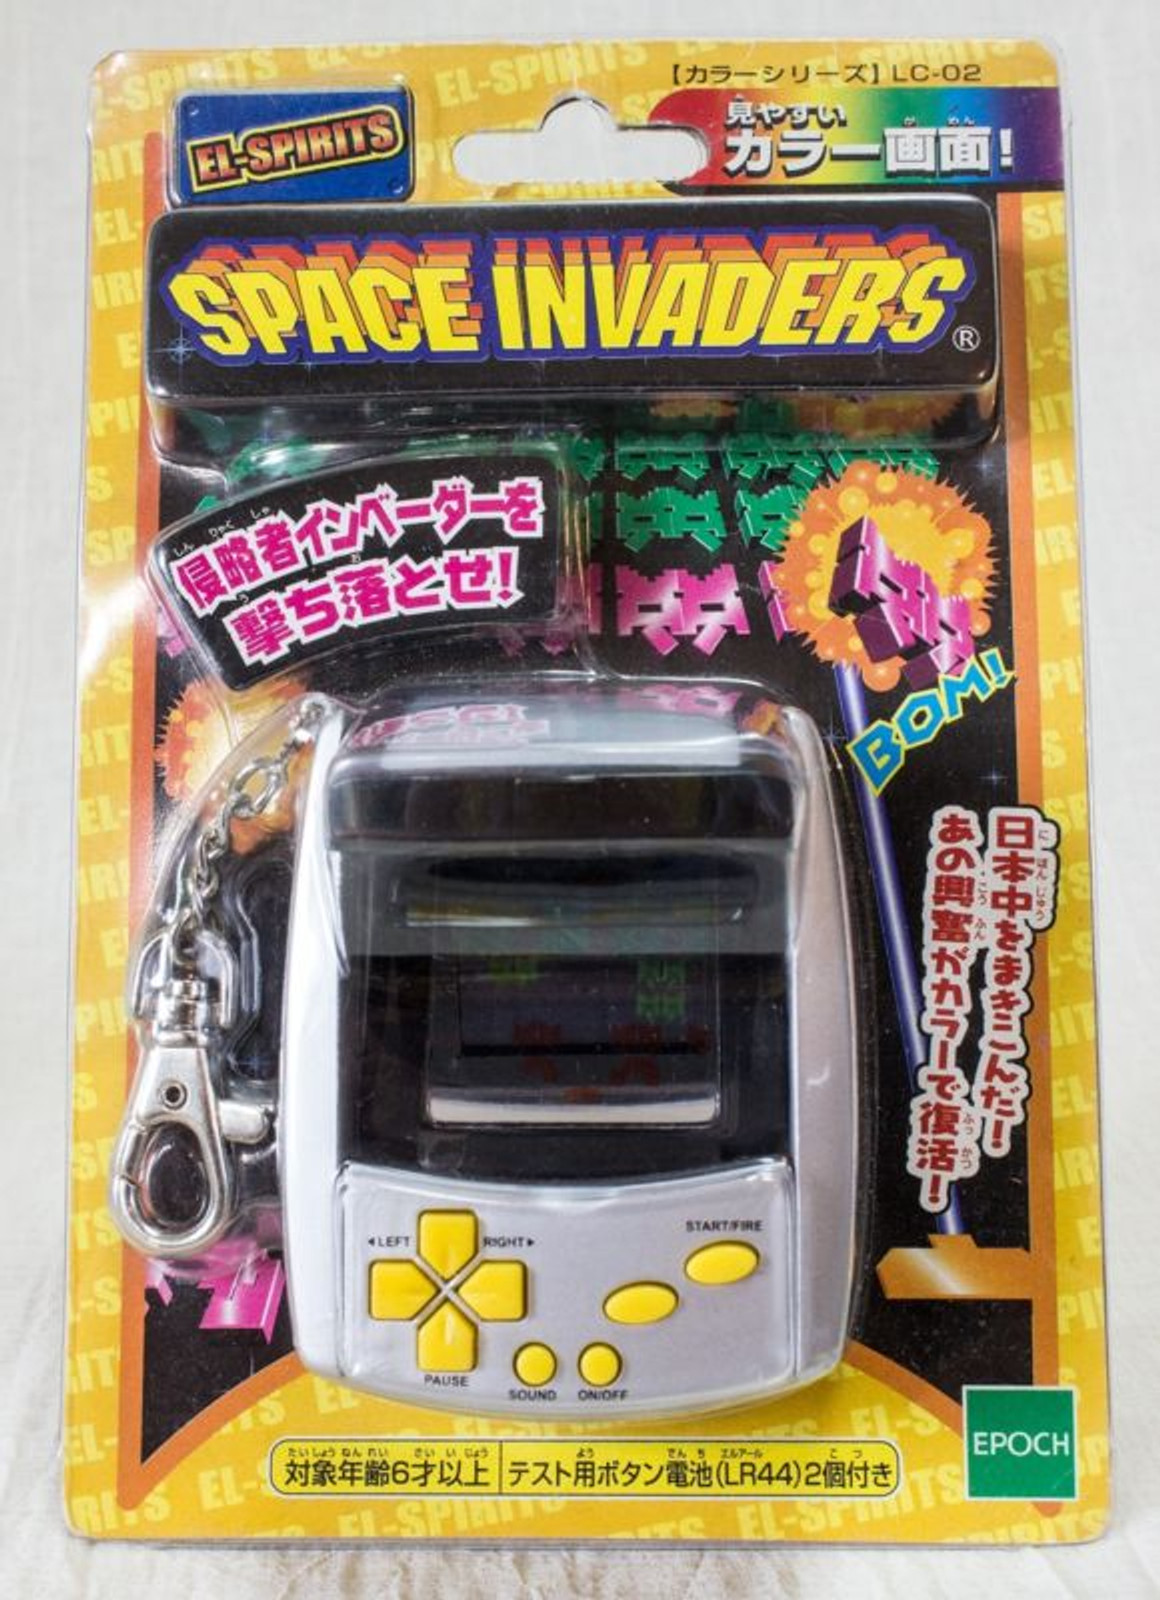 Space Invaders Mini Game Key Chain Color Ver. EPOCH LC-02 JAPAN ANIME MANGA